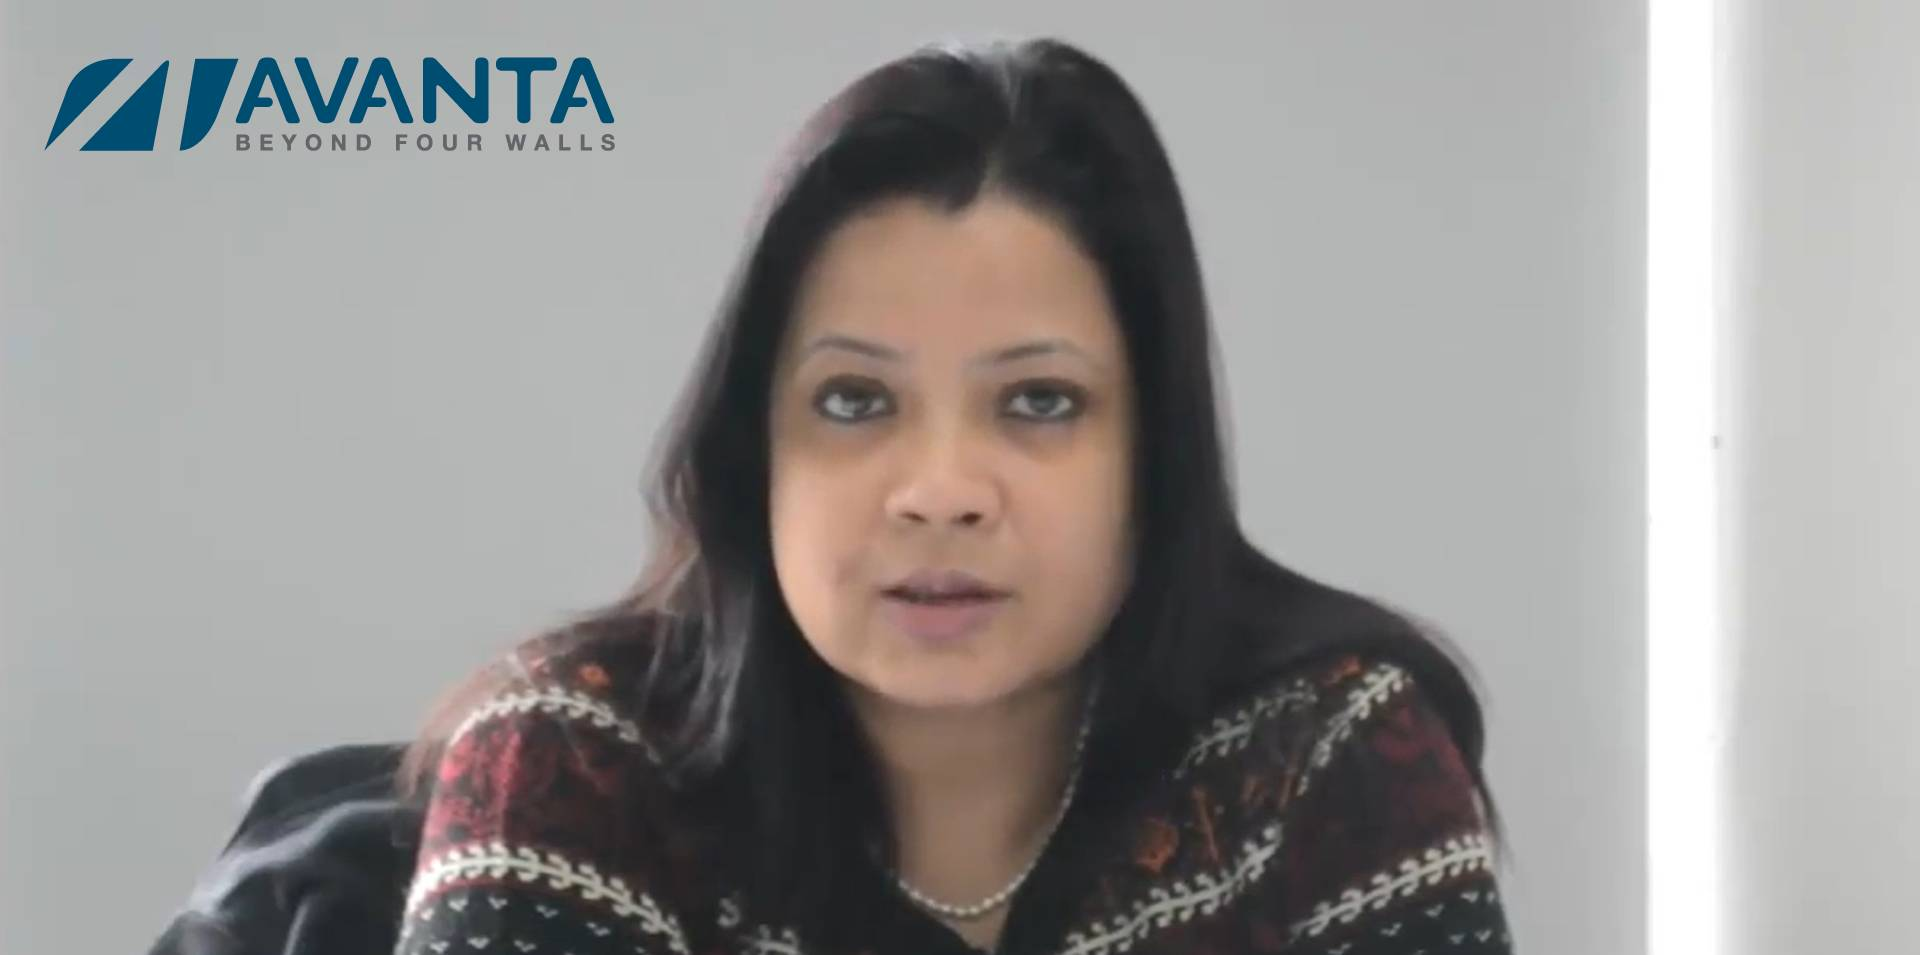 Avanta Business Centre Review by Conferderation of British Industry